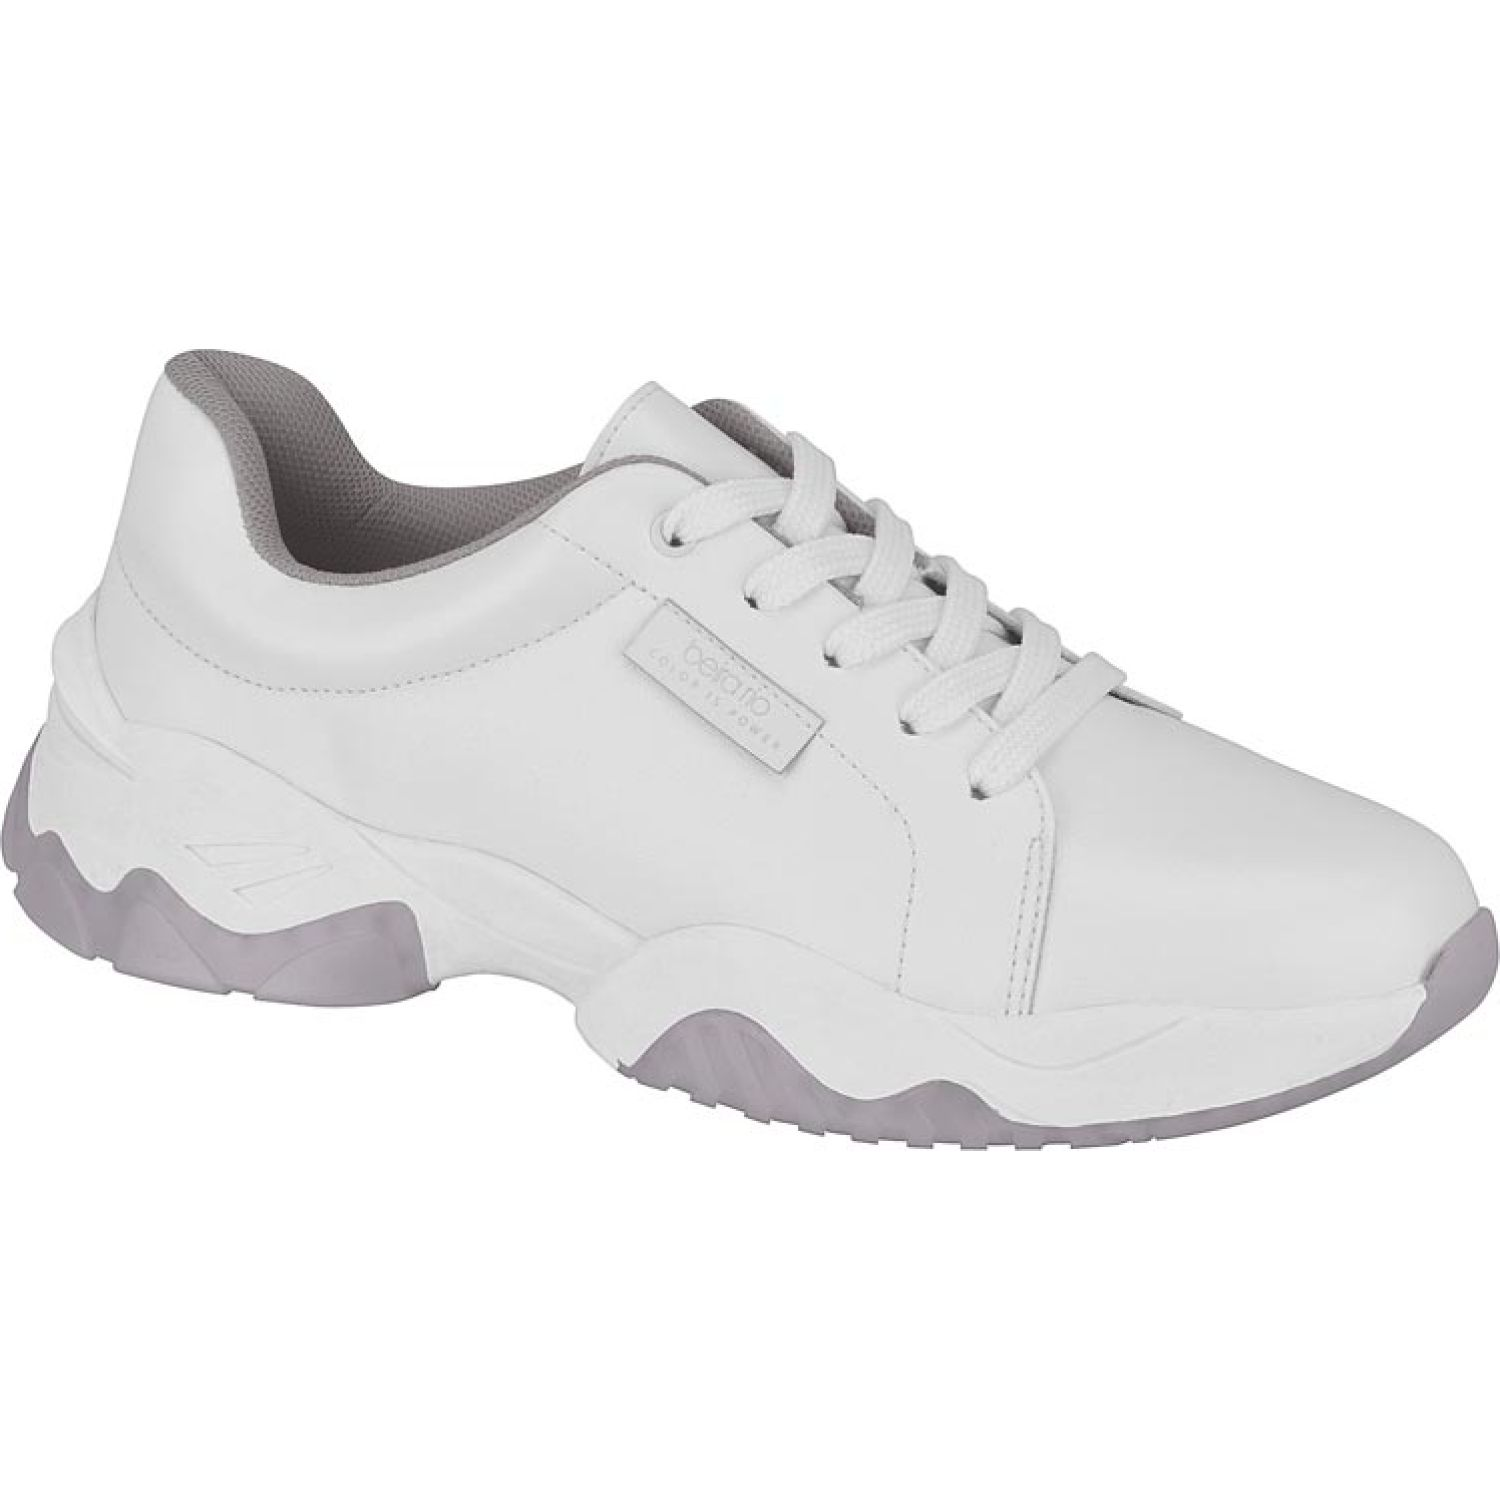 BEIRA RIO 4248.200.9569-16072 Blanco Zapatillas Fashion